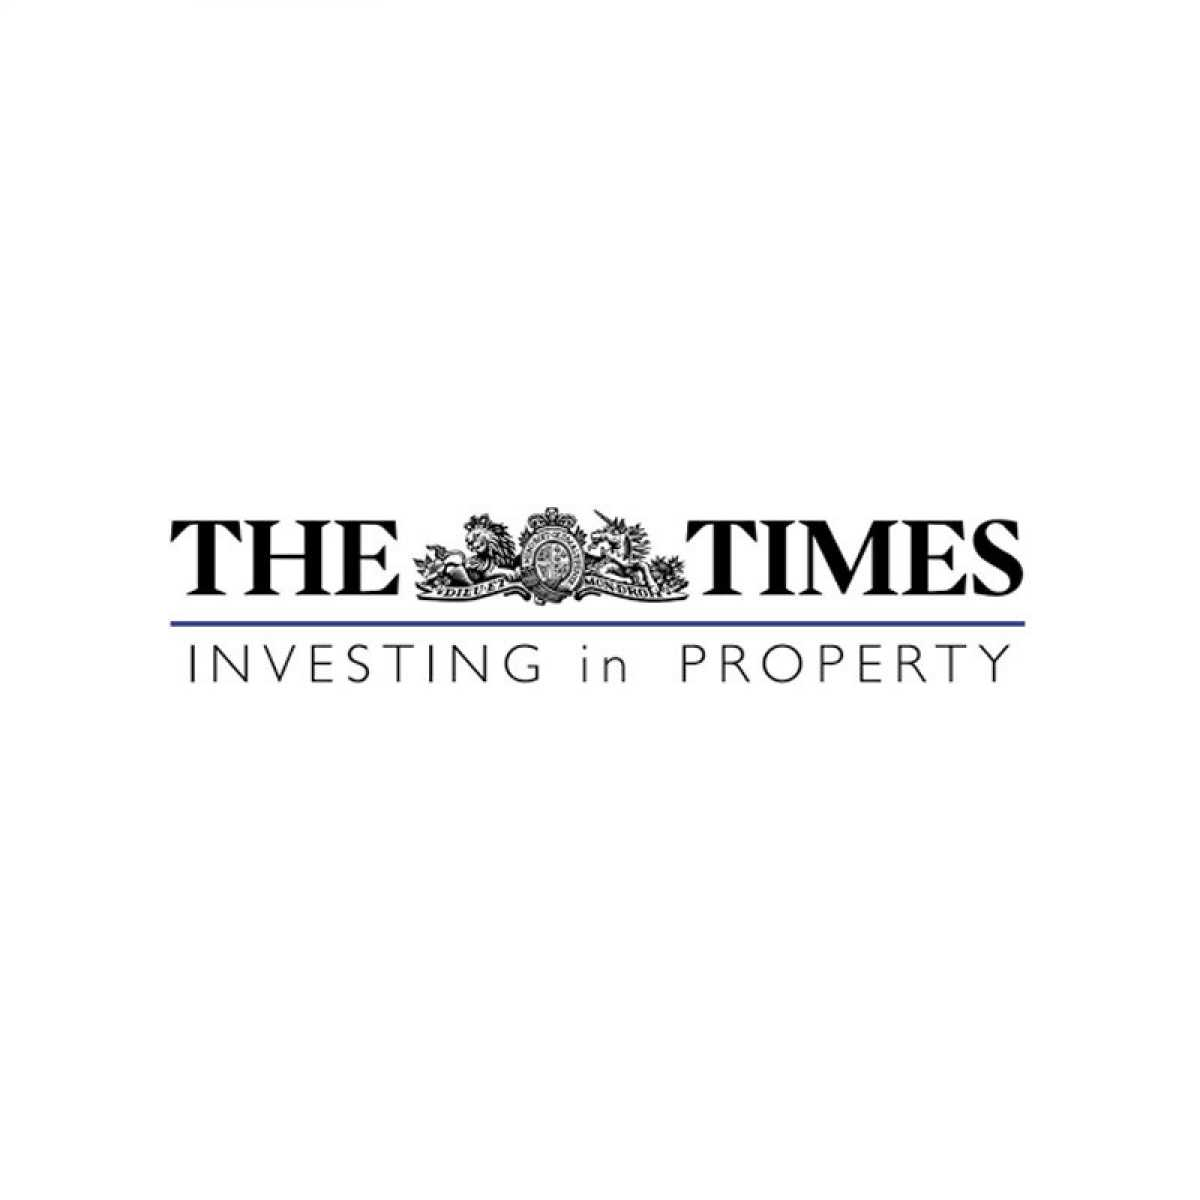 The Times – Investing in Property